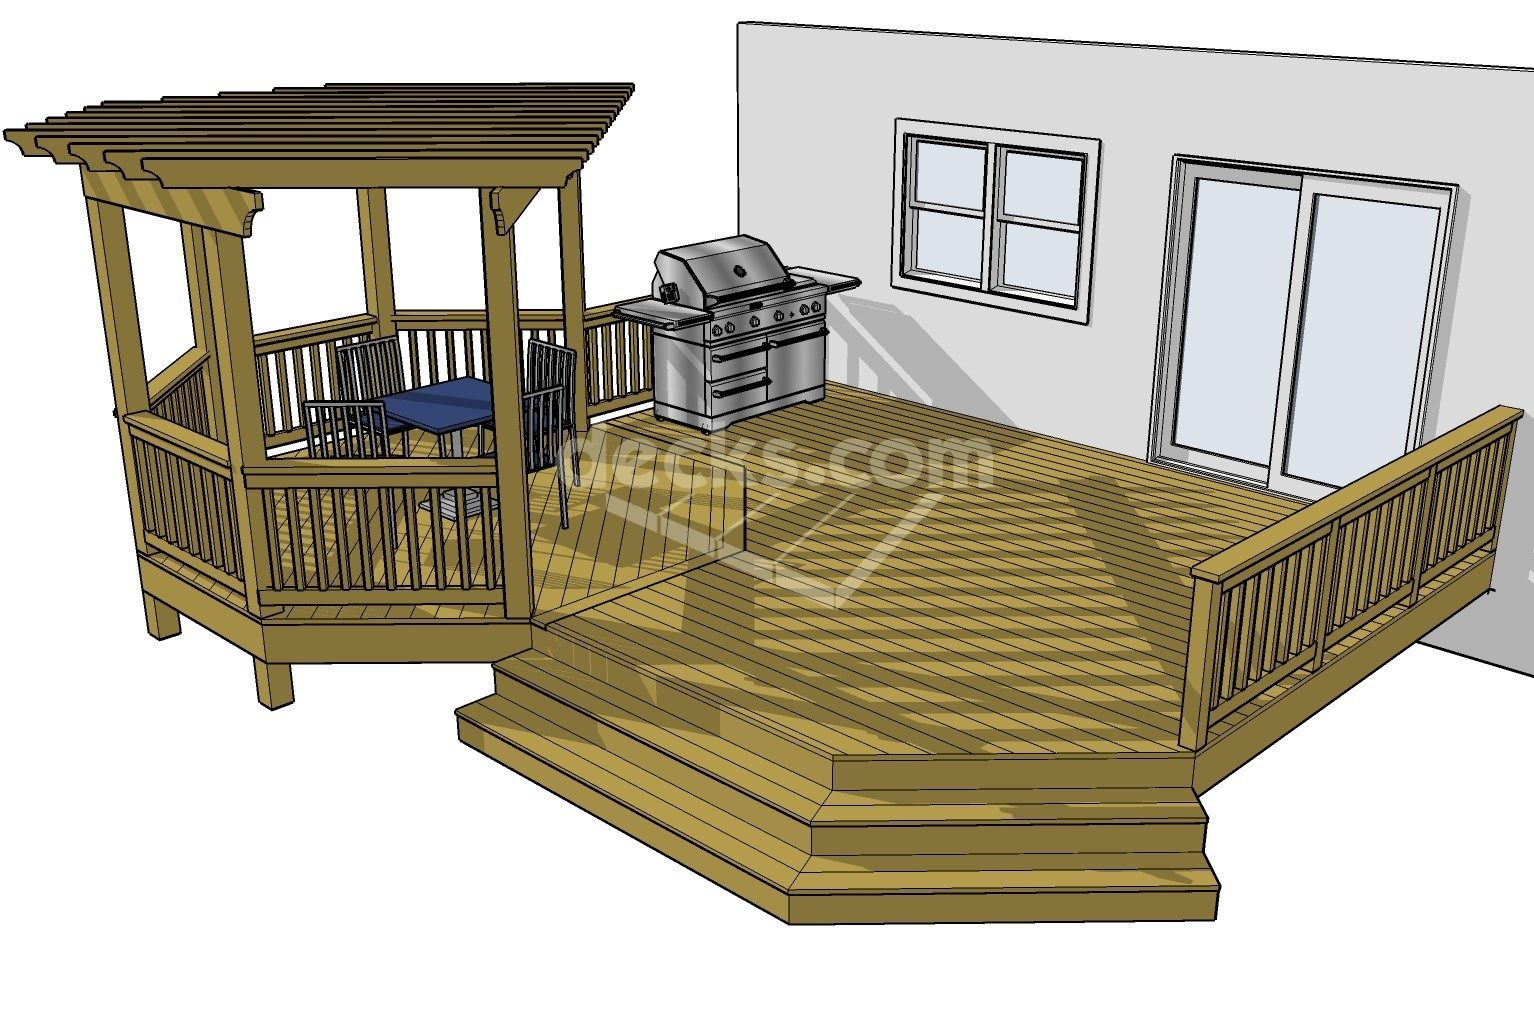 10 tips for designing a great deck Wood deck designs free